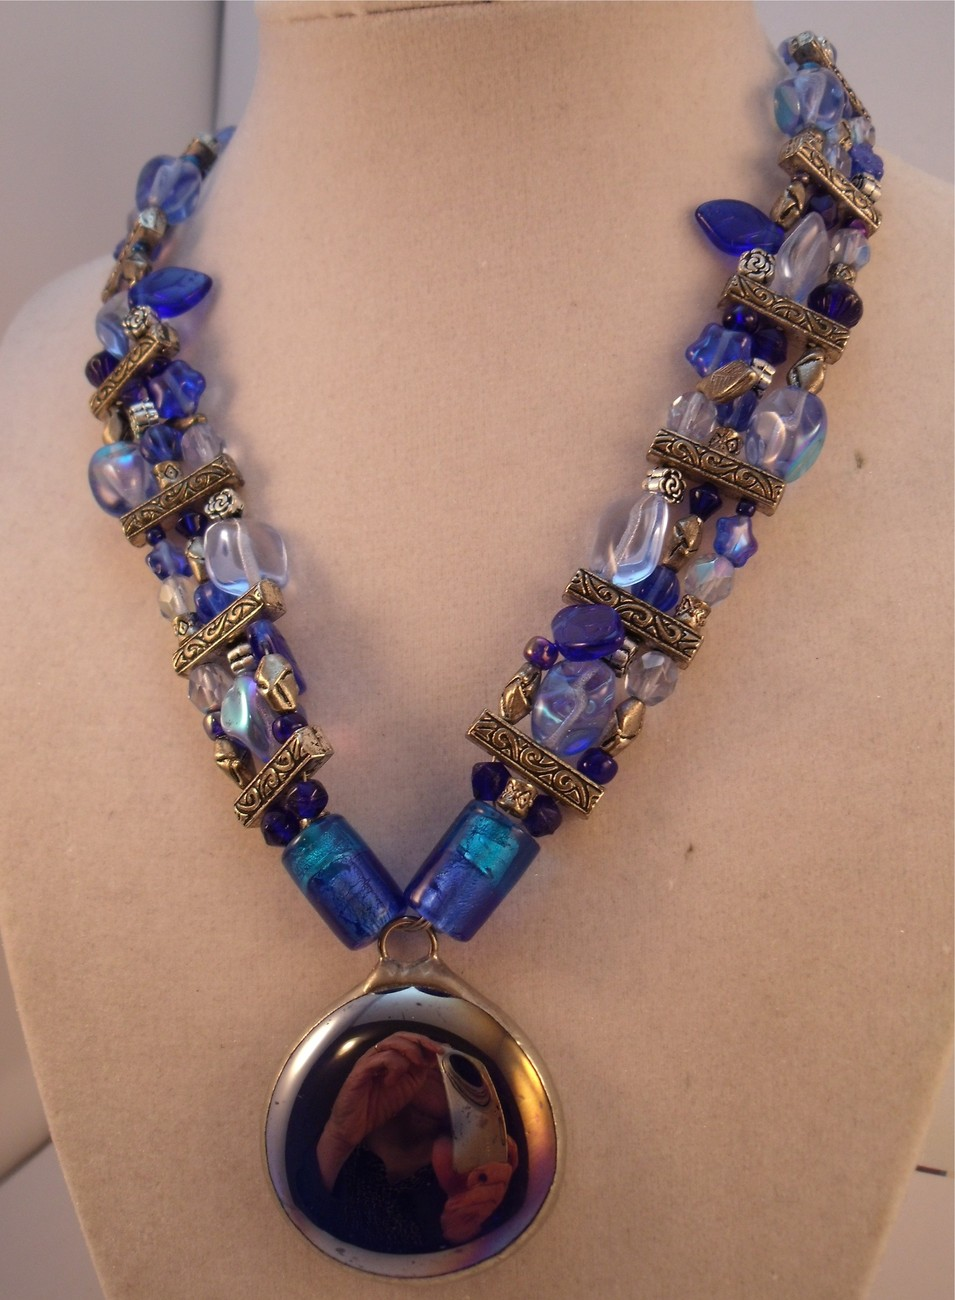 Shades of blue glass bead necklace with cab pendant